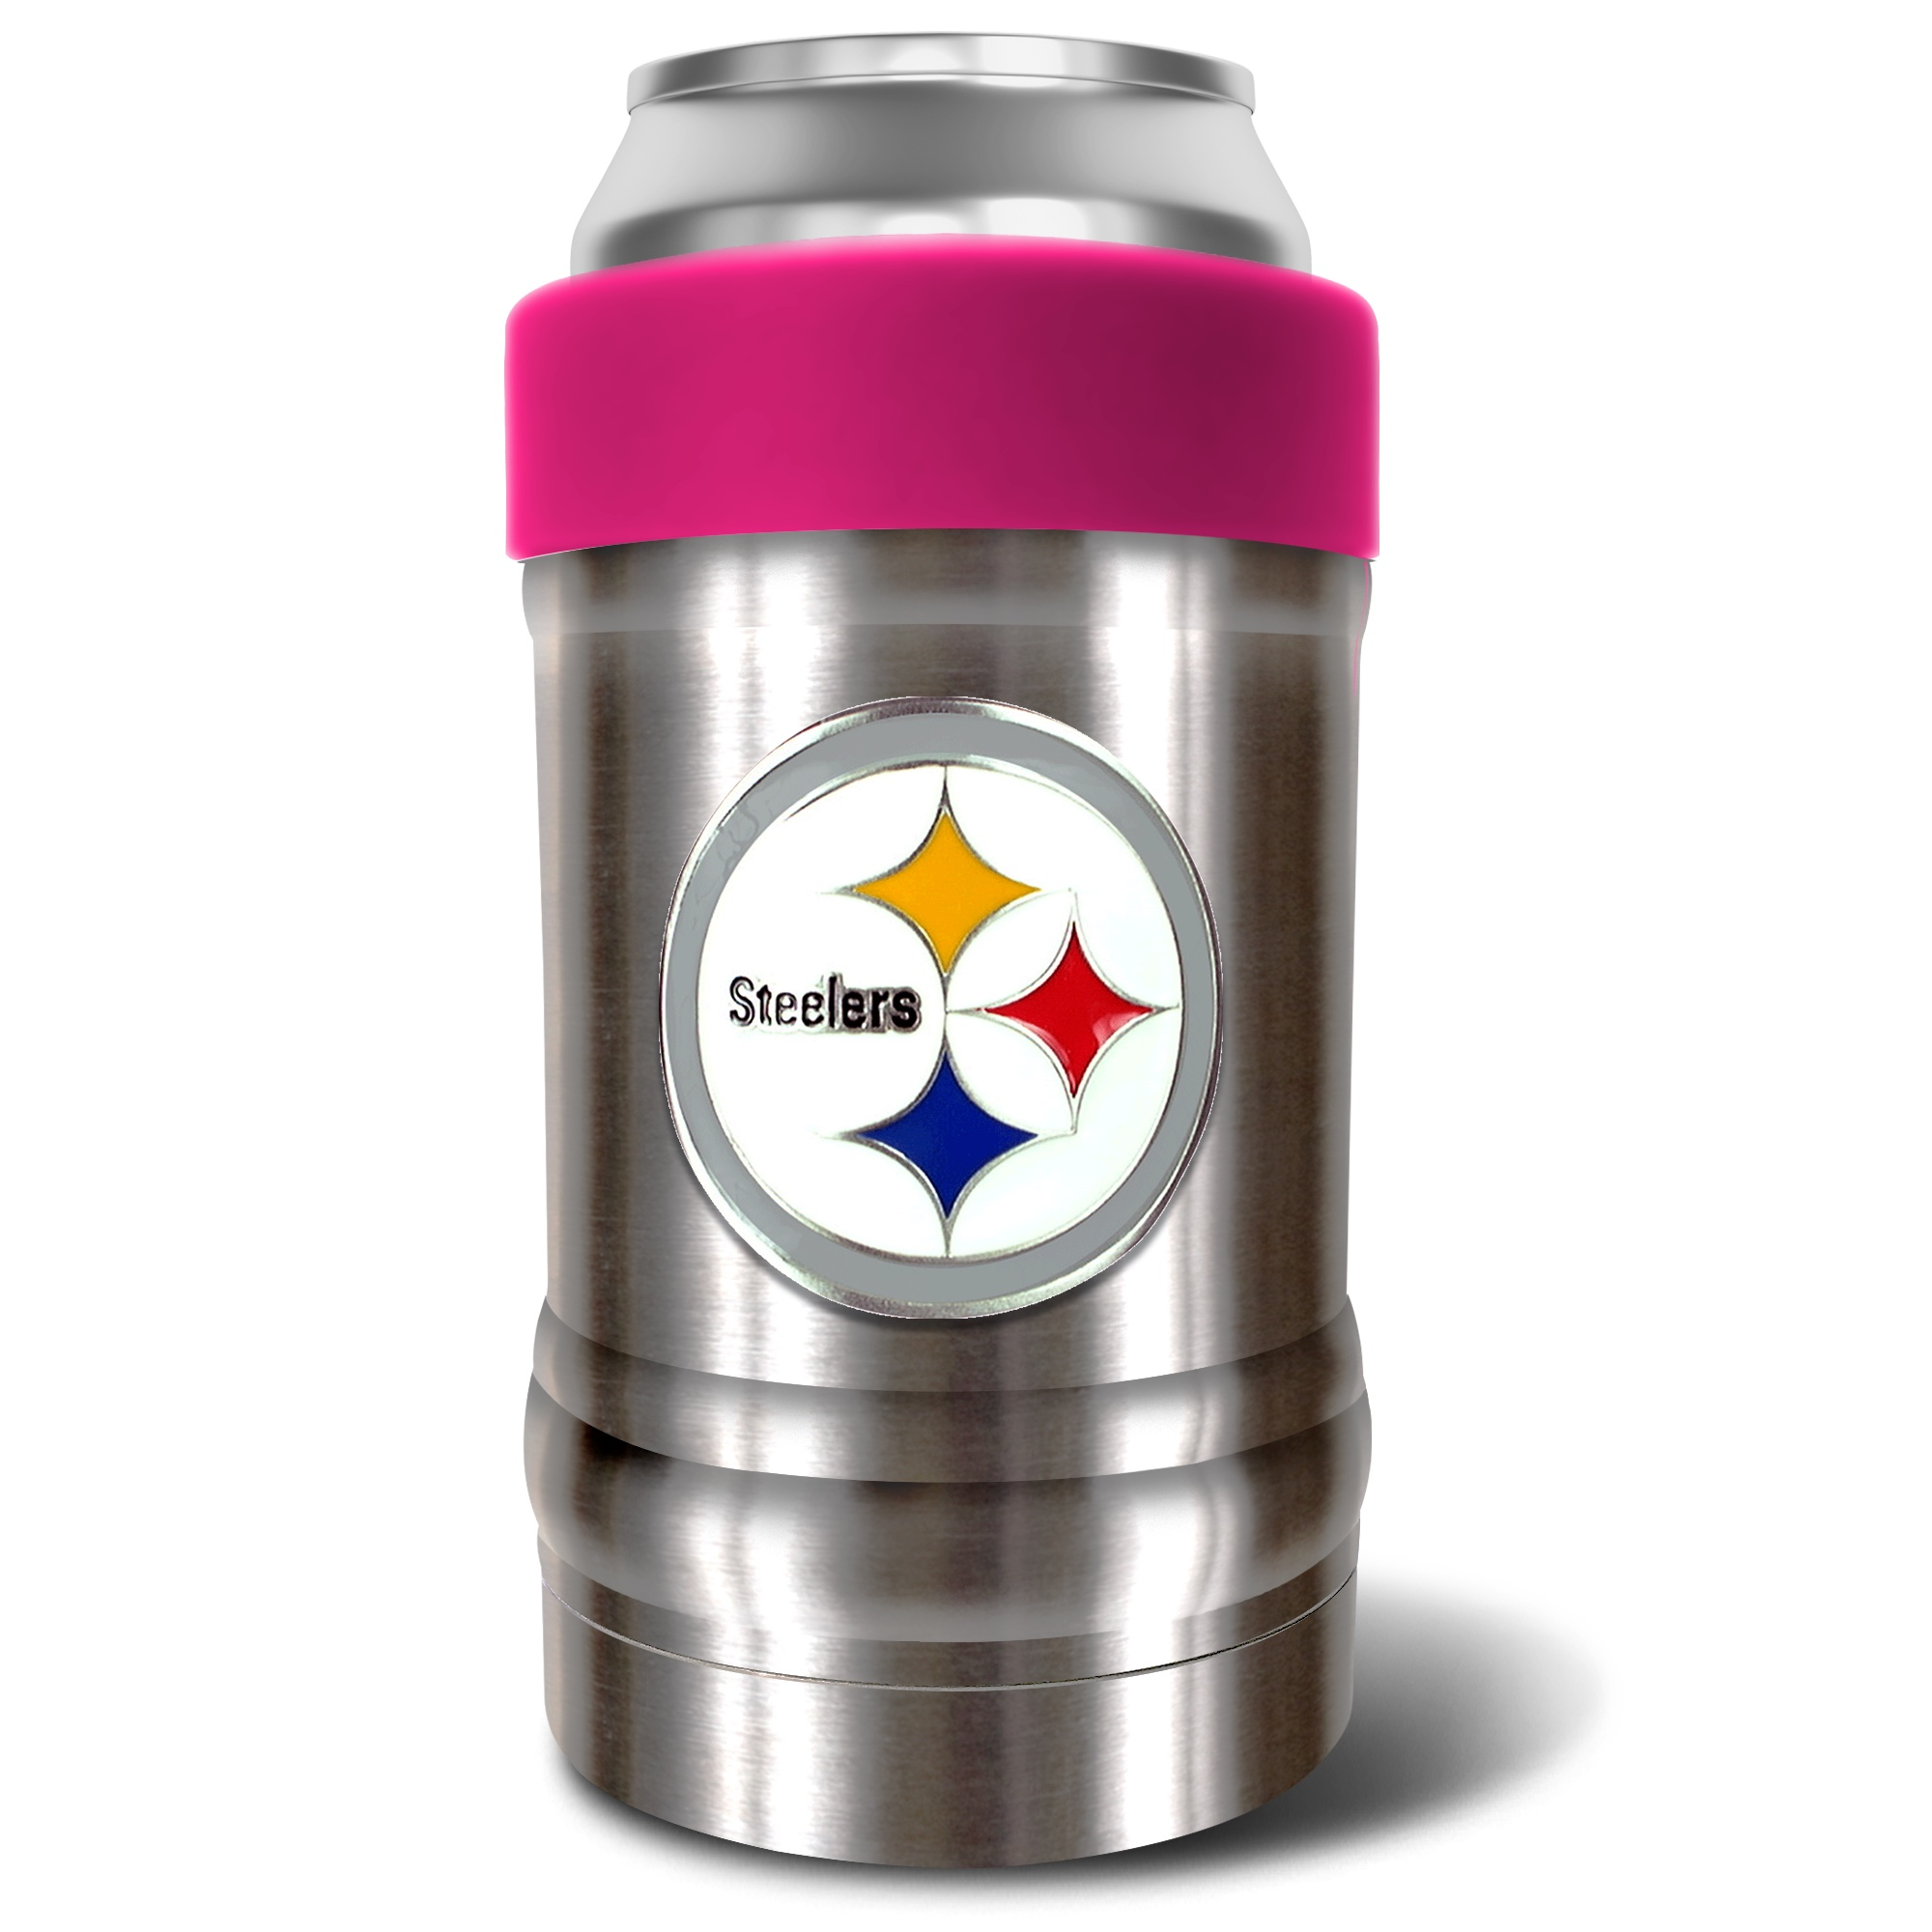 Pittsburgh Steelers The Locker 12oz. Can Holder - Silver/Pink - No Size